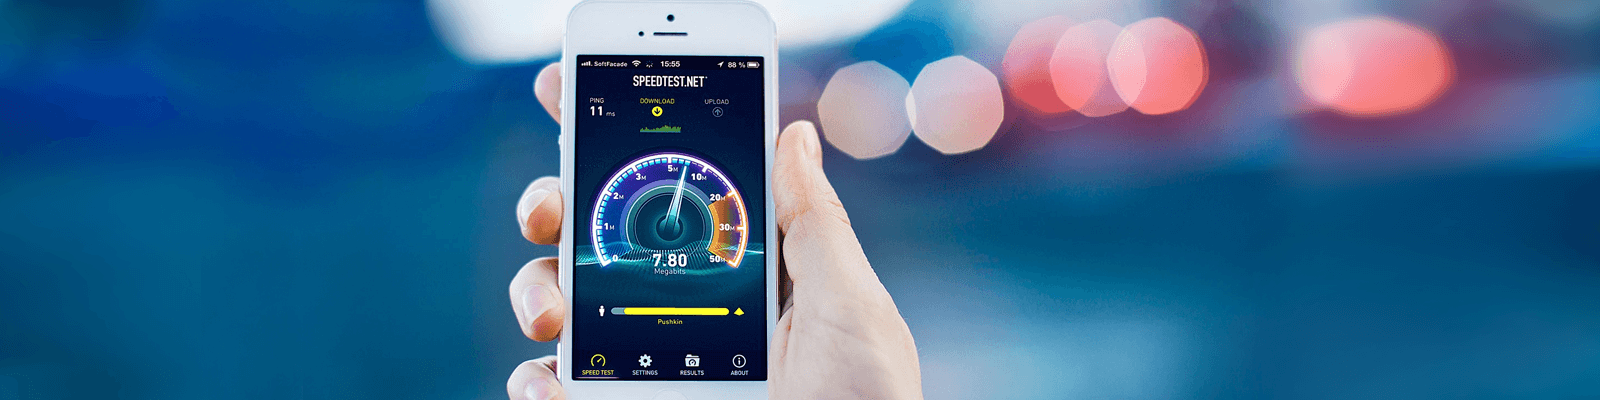 app like speedtest cost